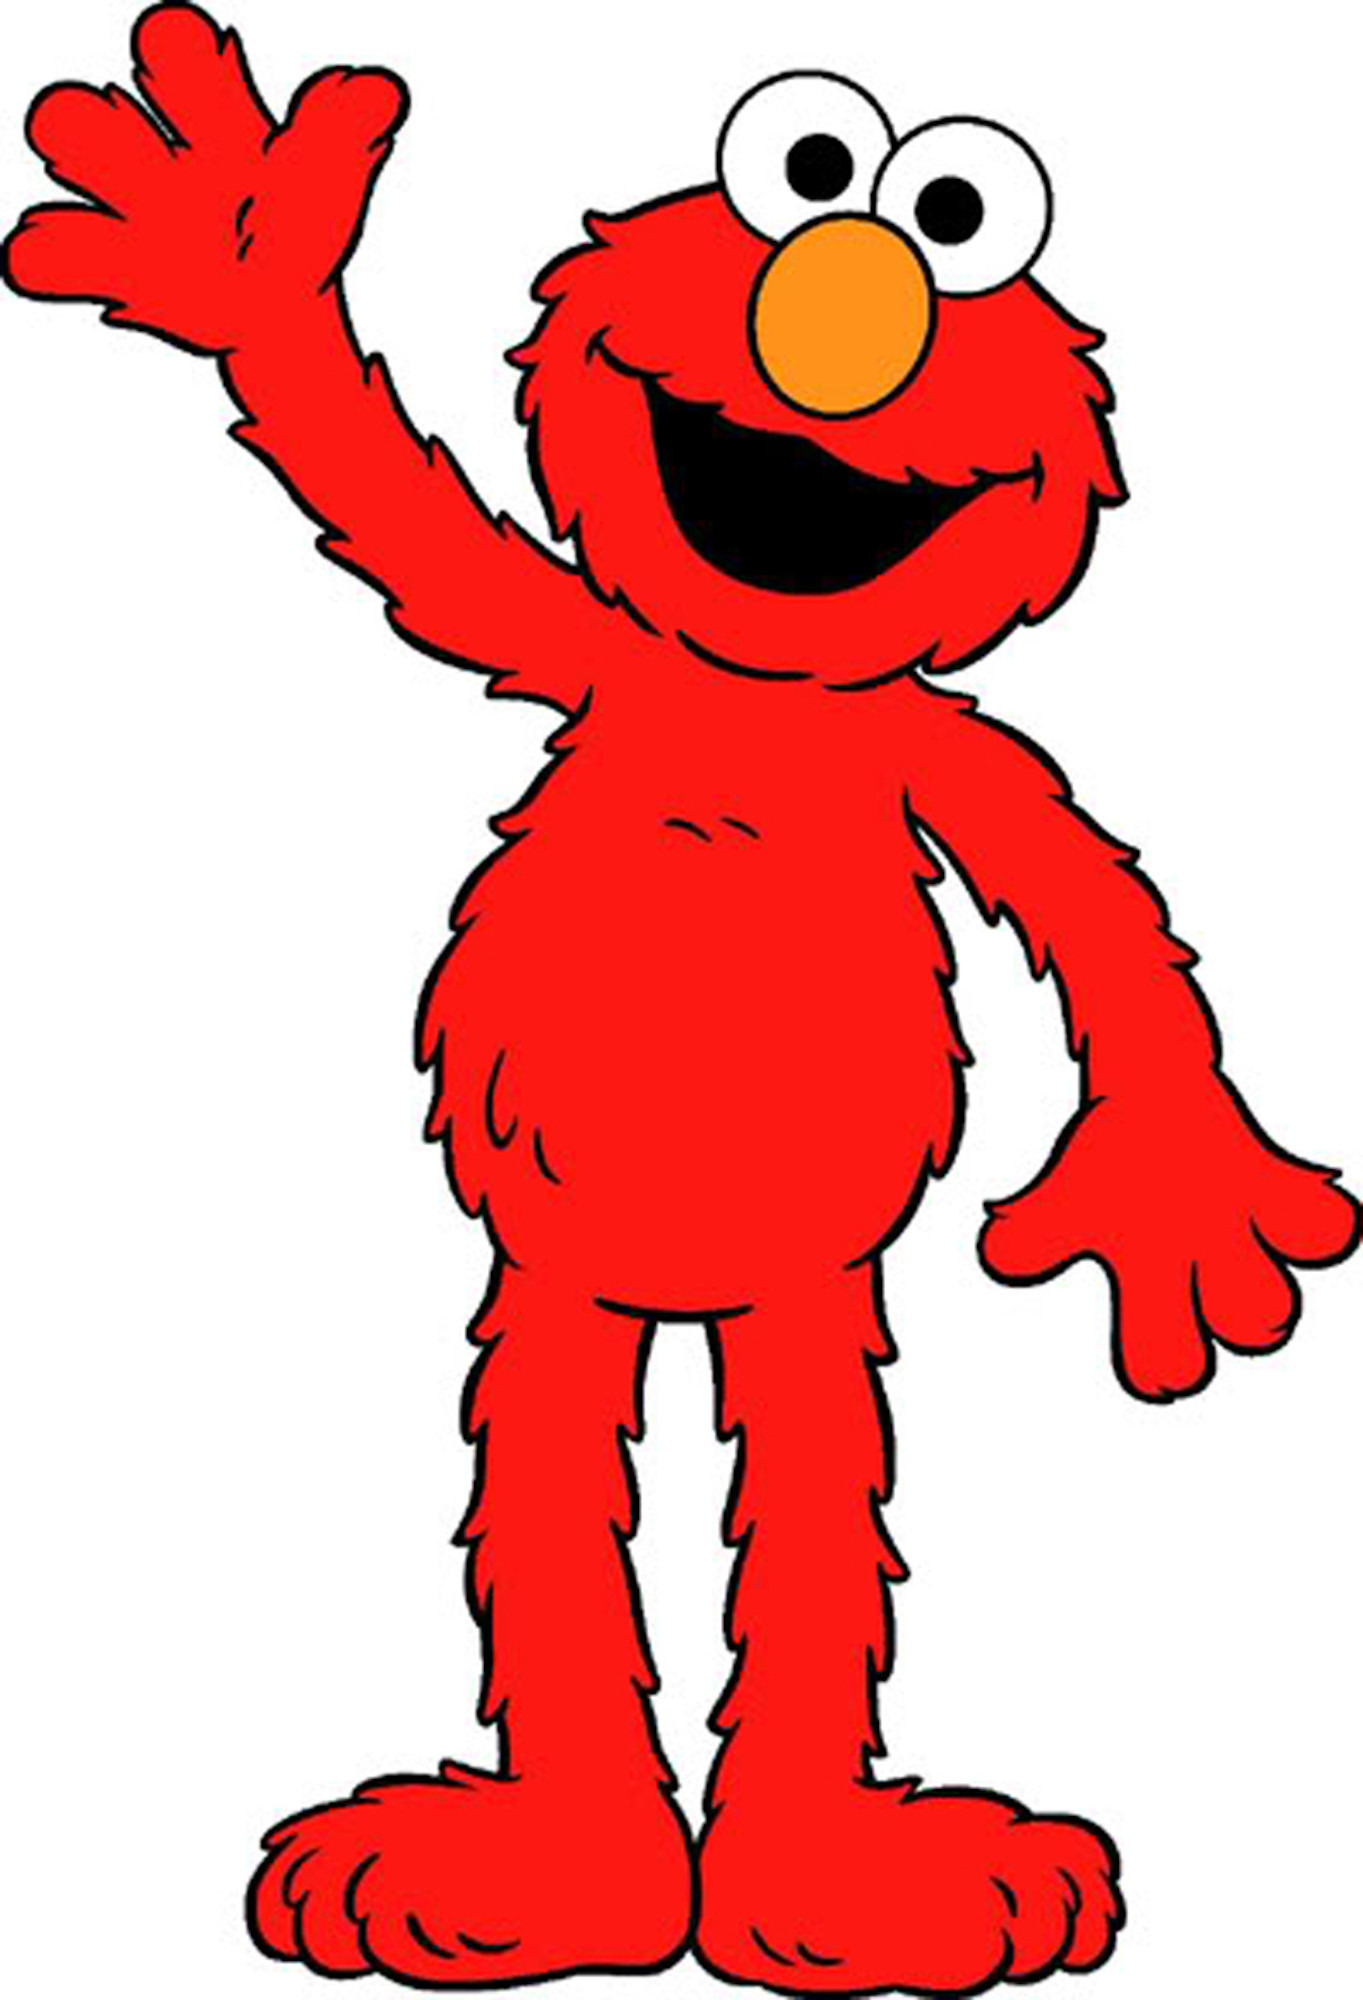 Elmo Wallpaper For Iphone 5 Galleryimage Co